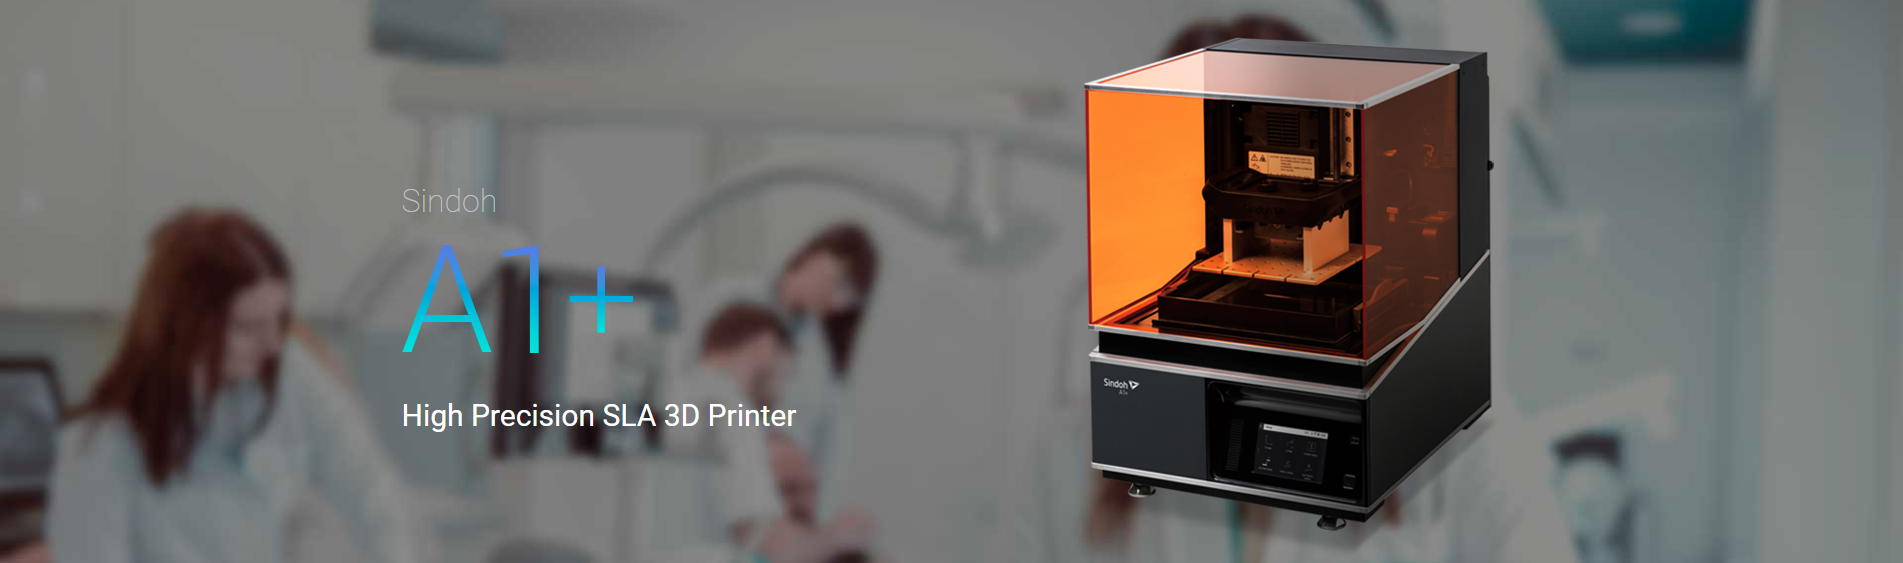 Sindoh 3DWOX A1 SLA 3D Printer wow3dprinter